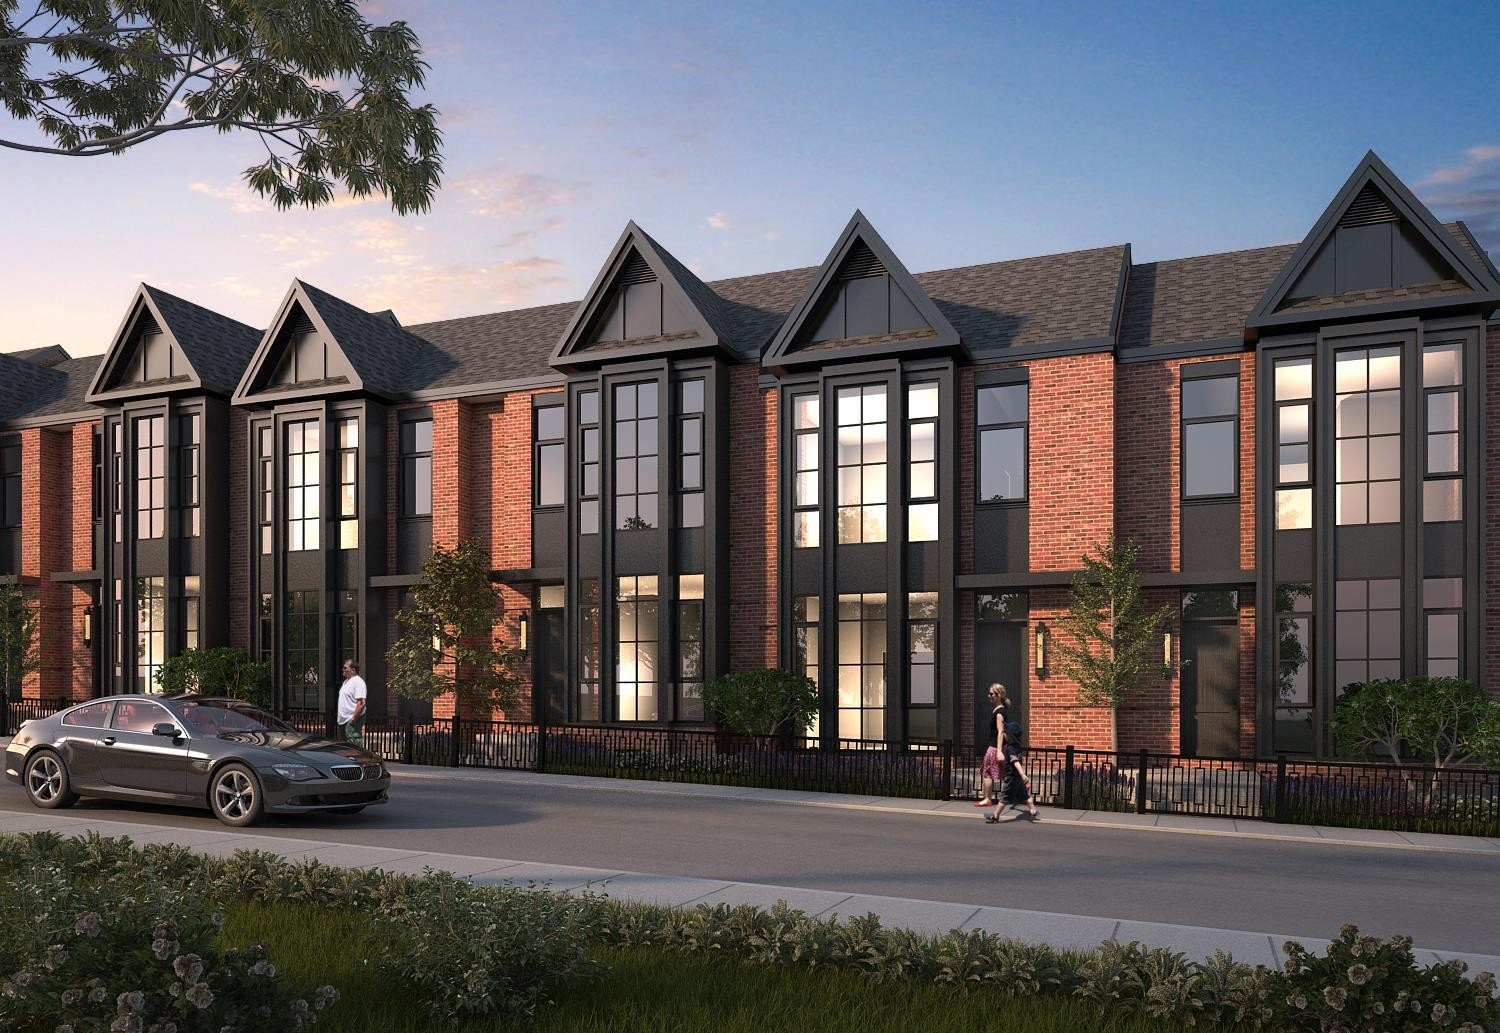 King George School Lofts & Town Homes at 400 Park Ave, Newmarket 0